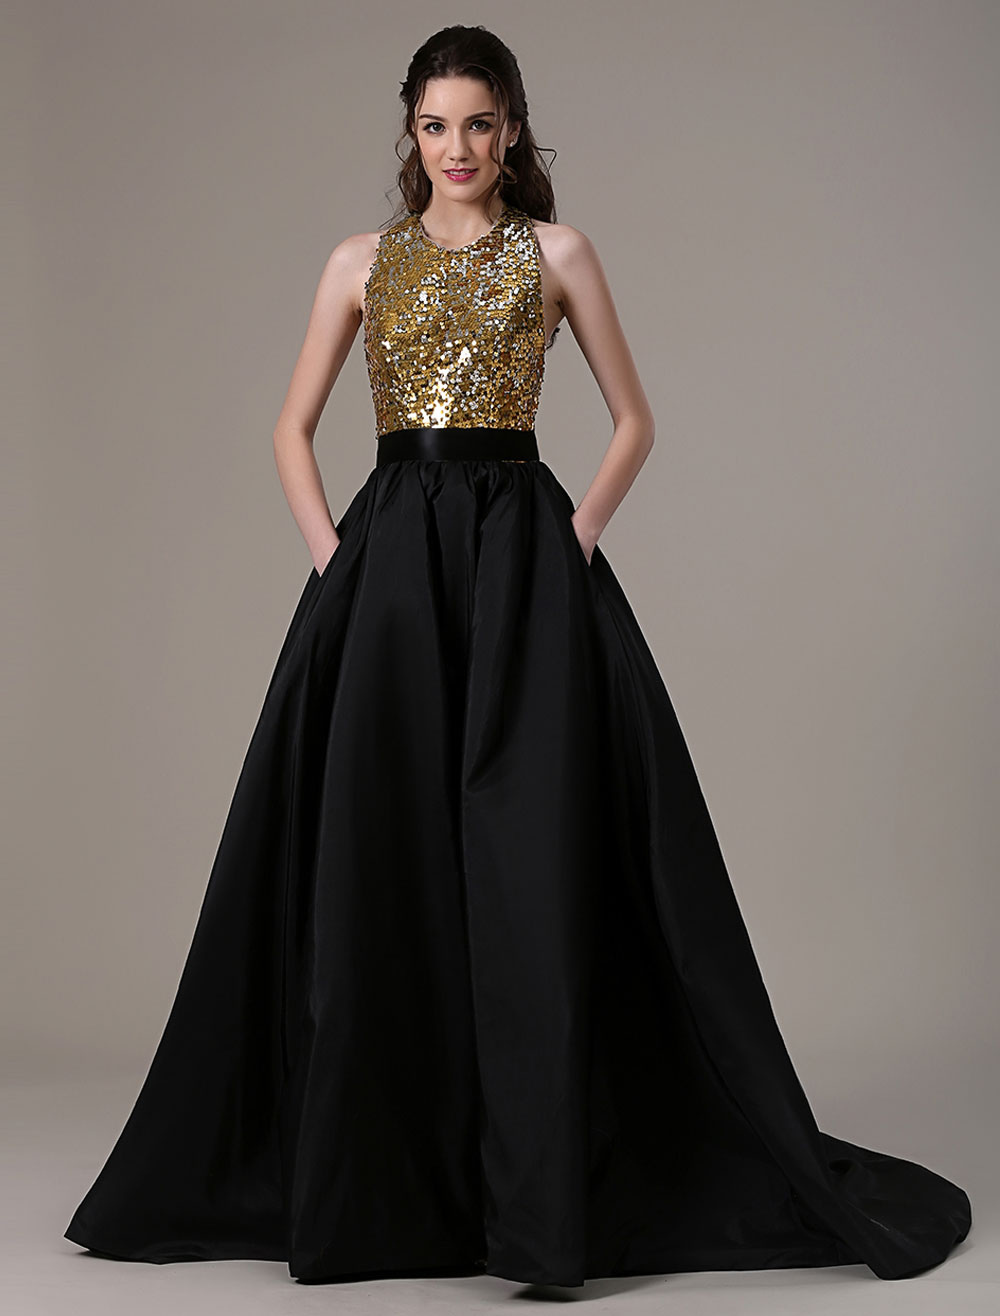 Black Wedding Dress Ball Gown Taffeta Pockets Sequin Bodice